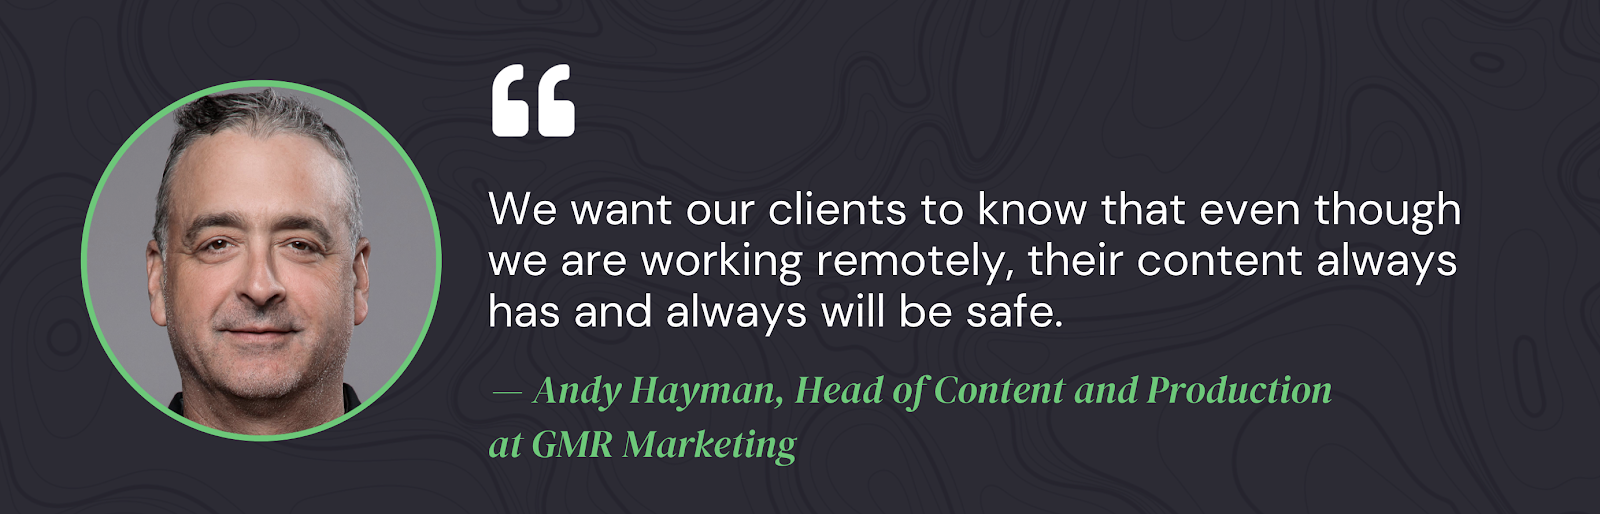 Quote from Andy Hayman GMR Marketing